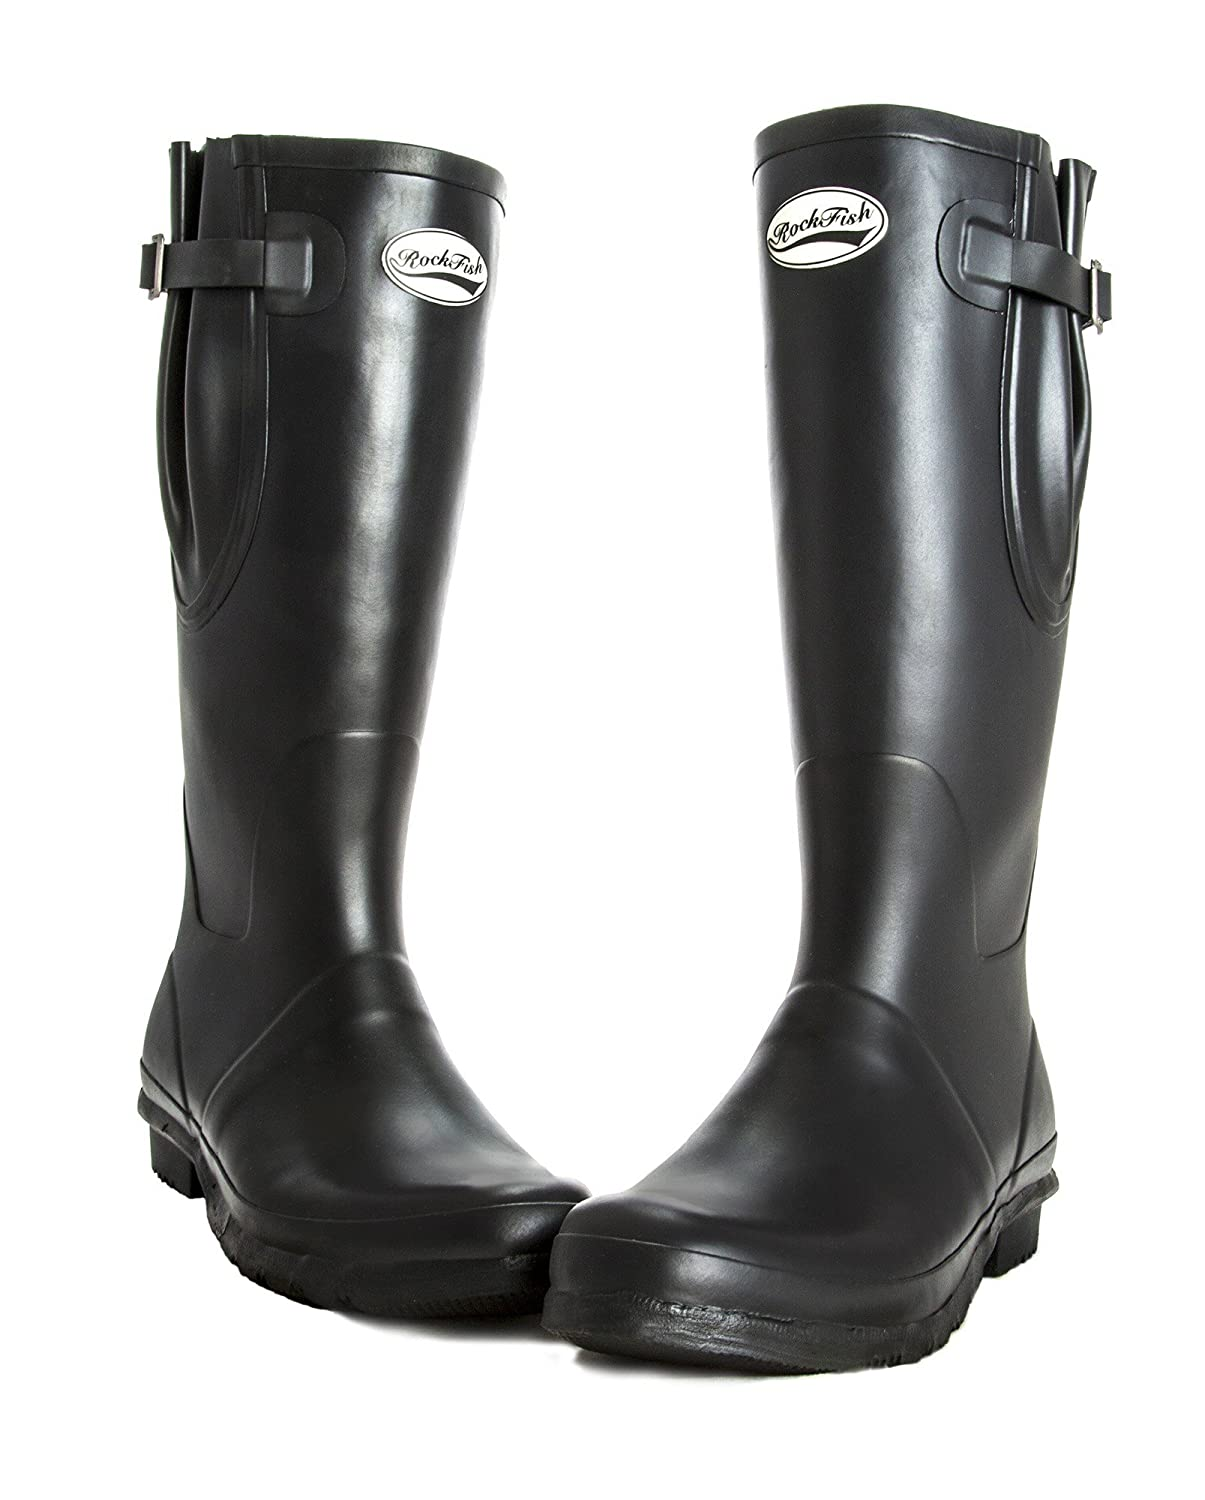 Neoprene Lined , Women's Wellington boots, adjustable calf fit, natural rubber, size UK7, free delivery